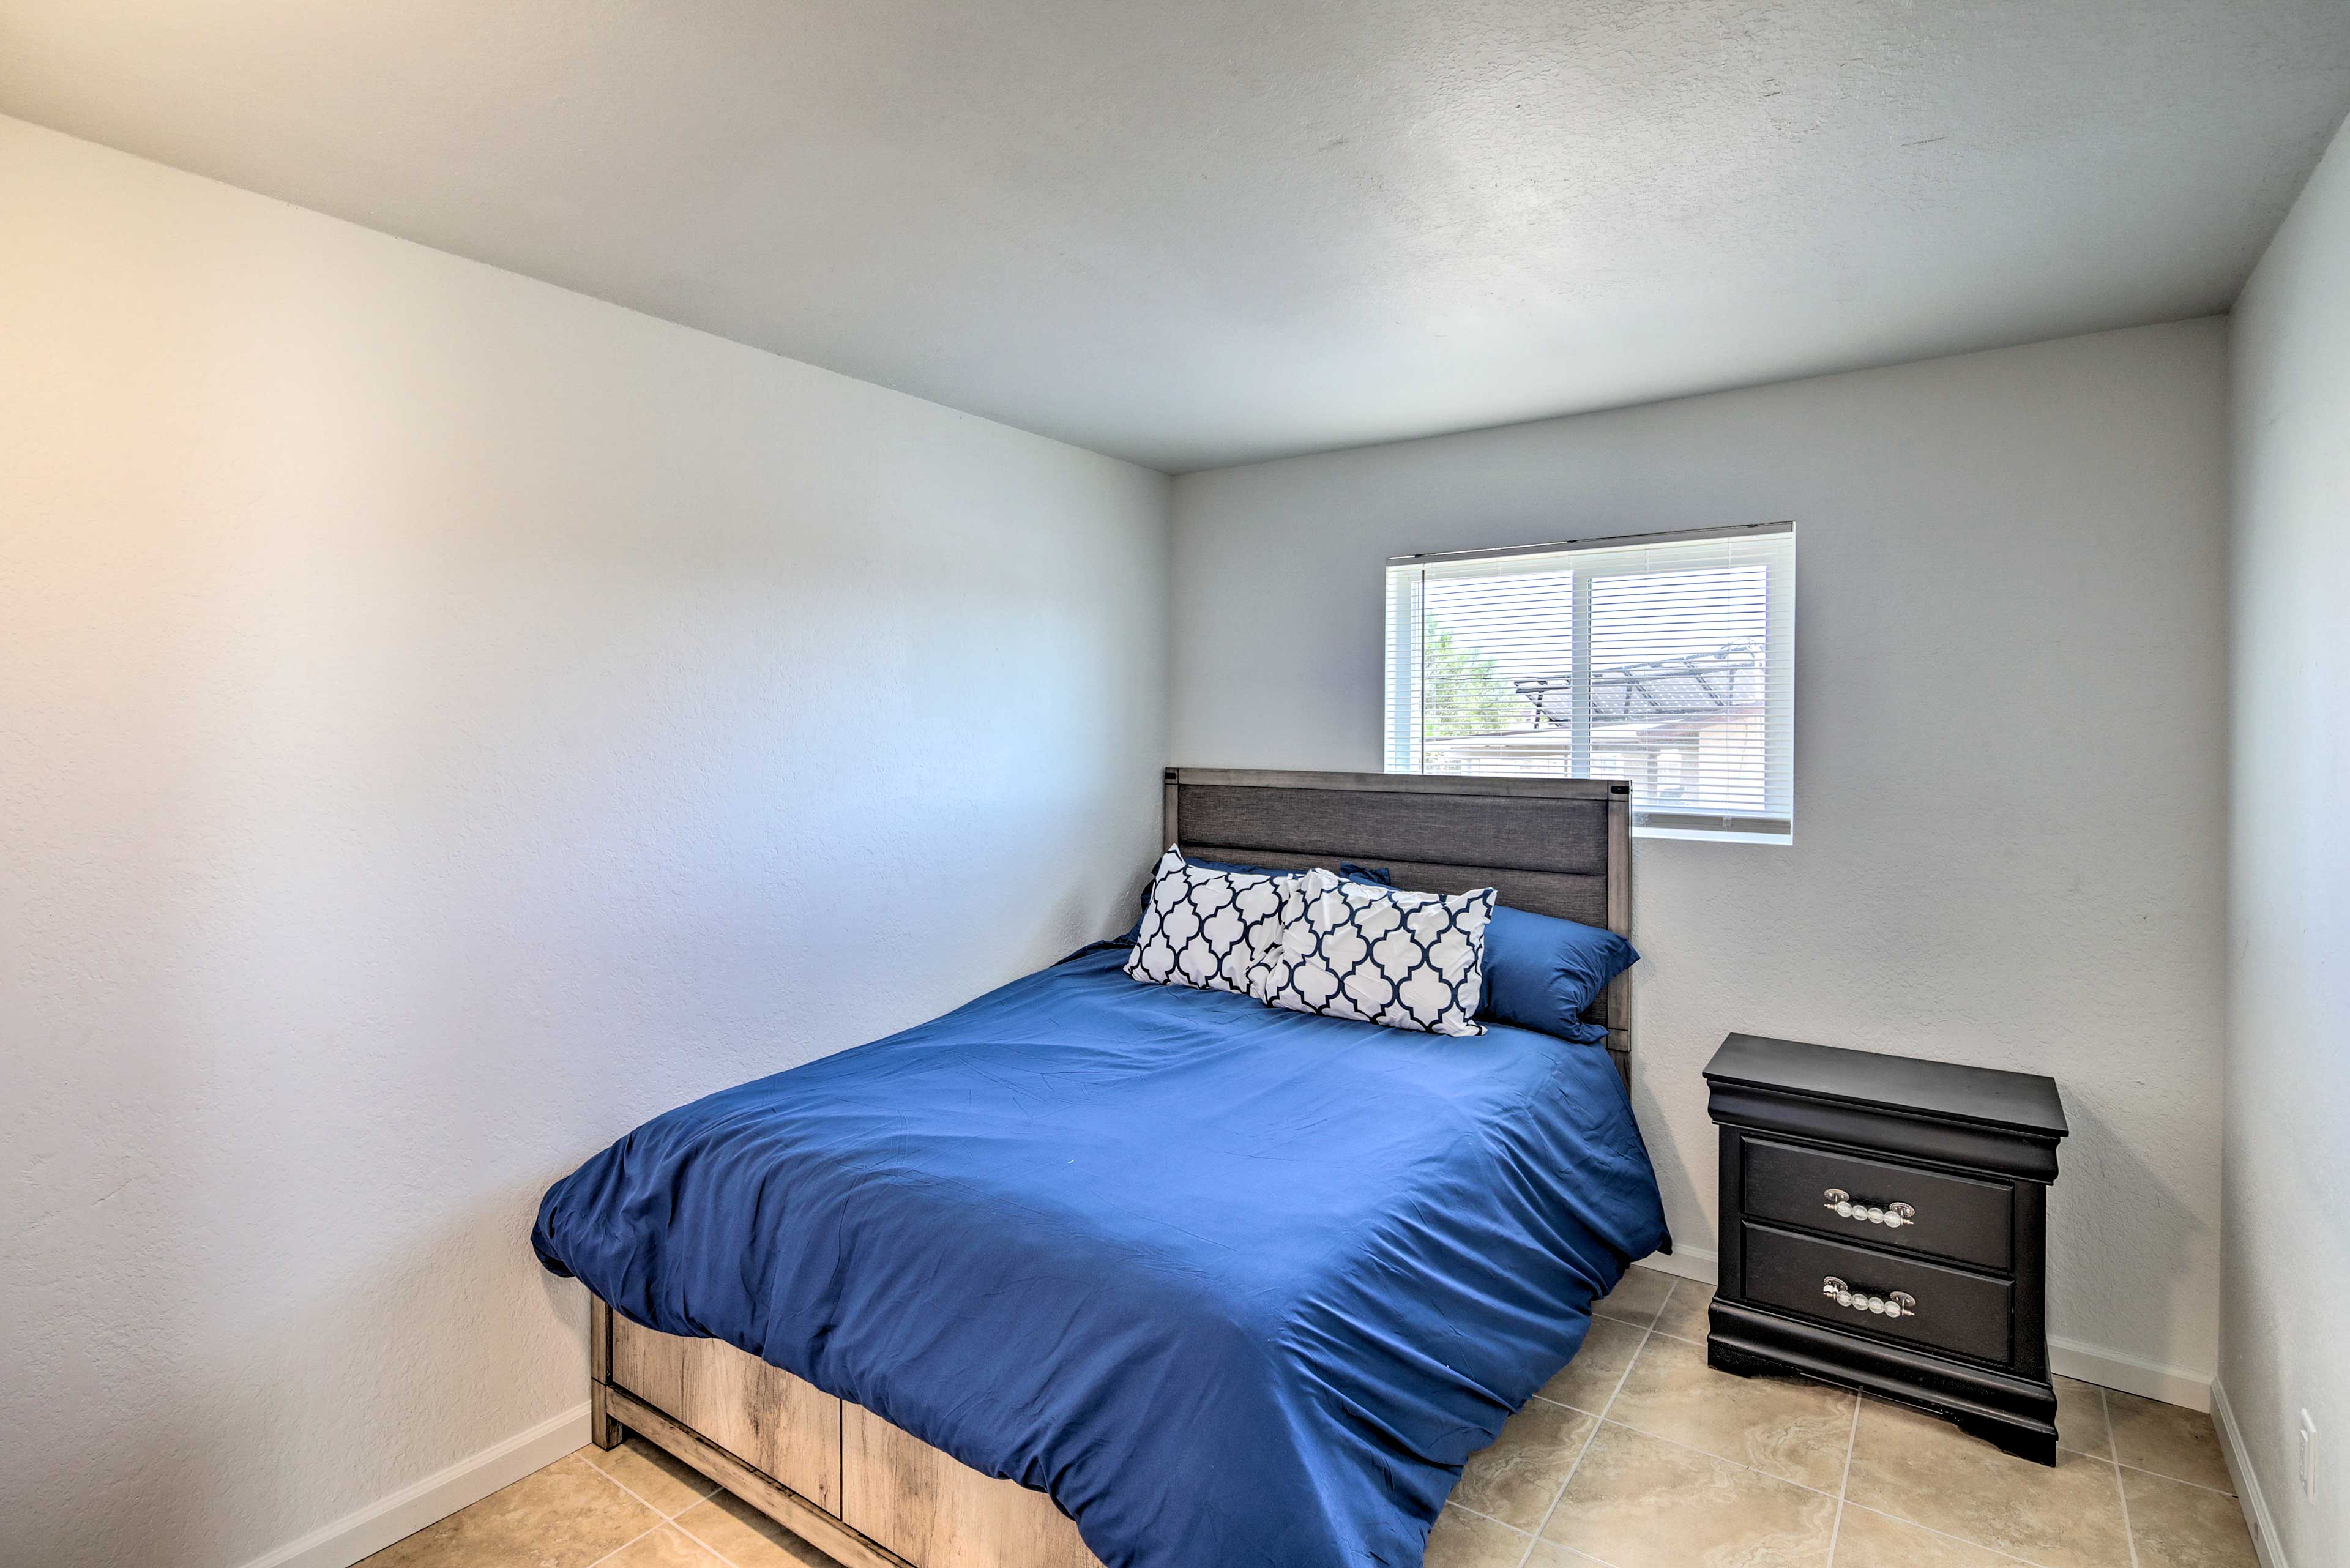 The second bedroom is outfitted with a queen bed as well.